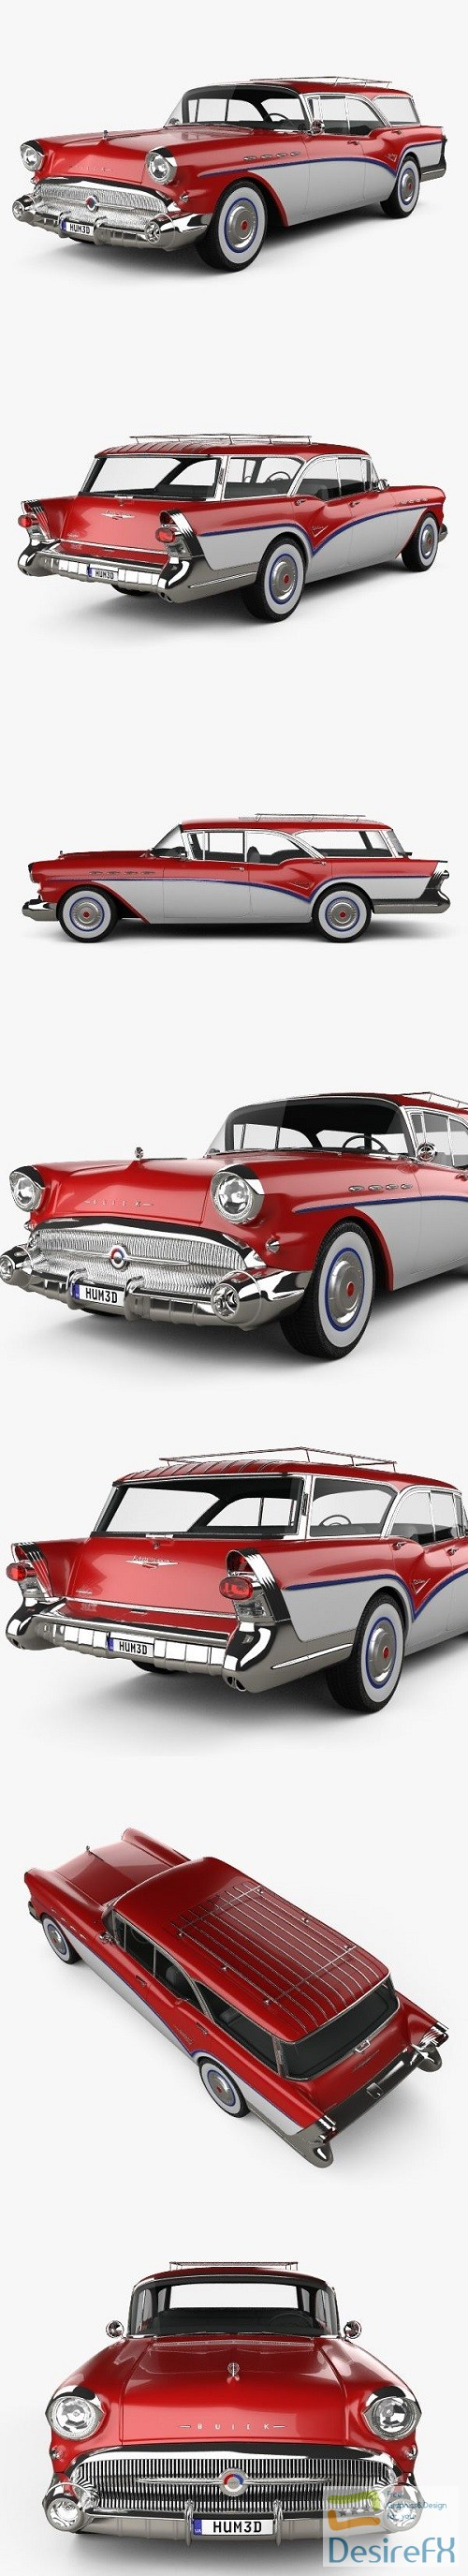 3d-models - Buick Century Caballero wagon 1957 3D Model